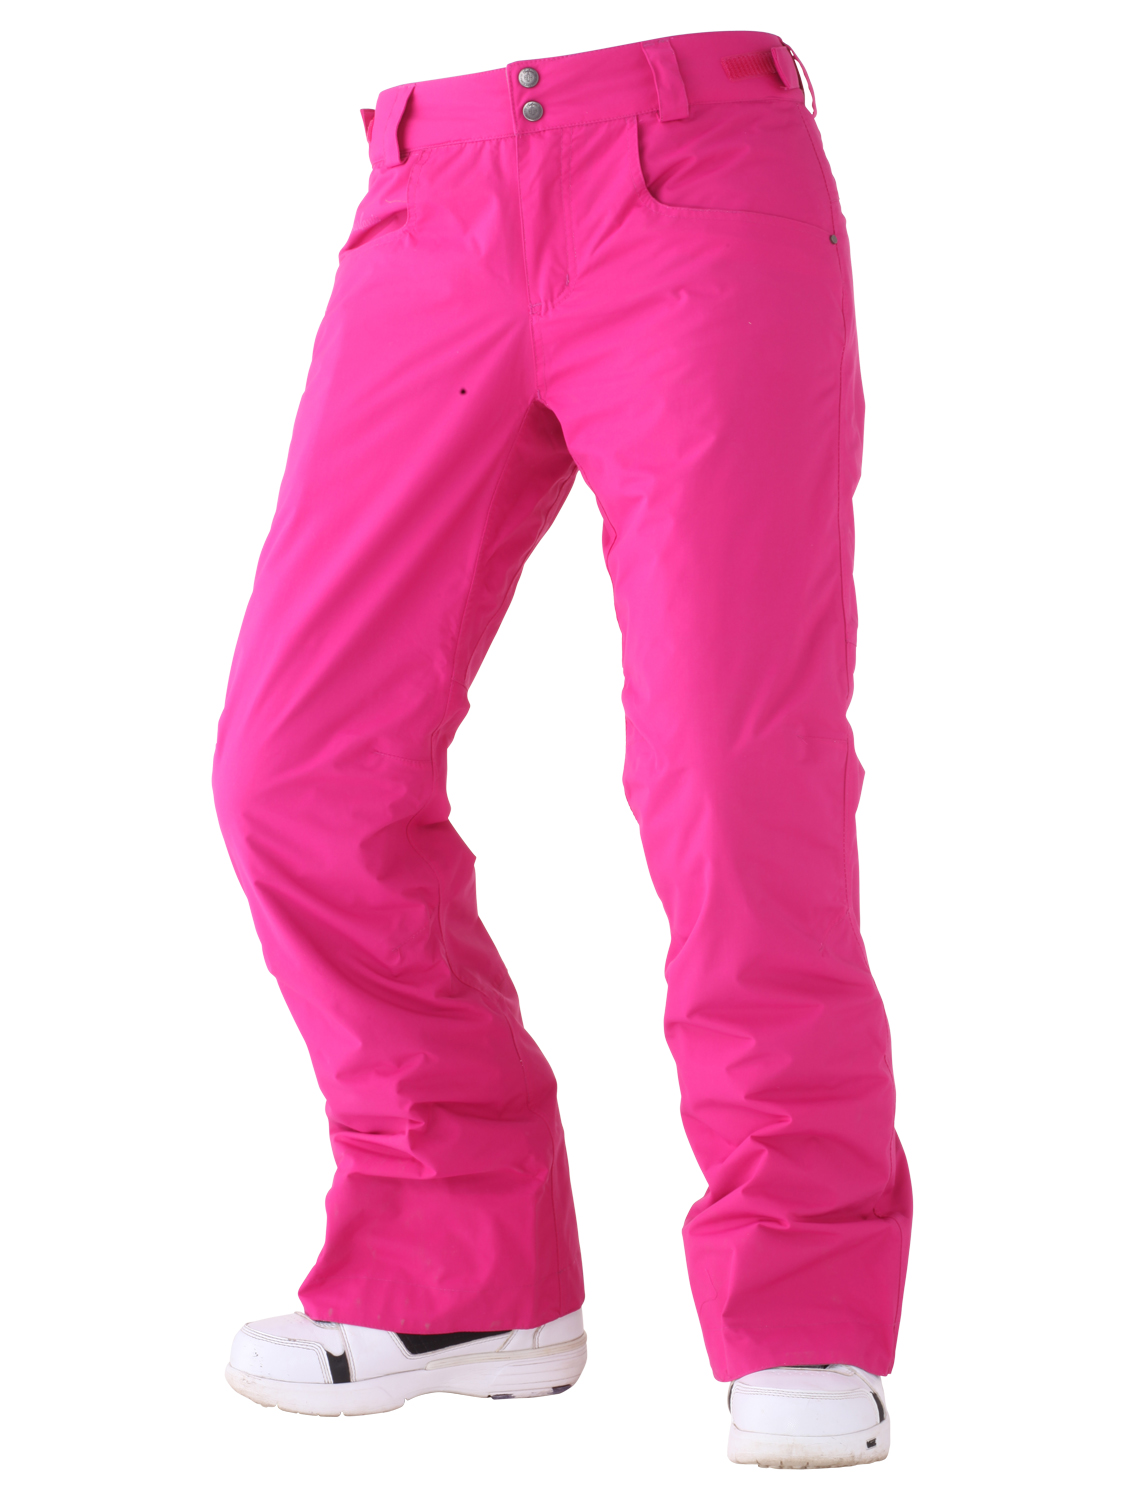 Pink. White. Price £ £ Clear All. Show Results. Womens Ski Pants & Salopettes. Read More. Lightweight, insulated and snowproof our womens ski pants are perfect for keeping your pins warm and dry out on the slopes. Available in many colours and styles you can mix and match our womens salopettes with our ski jackets.